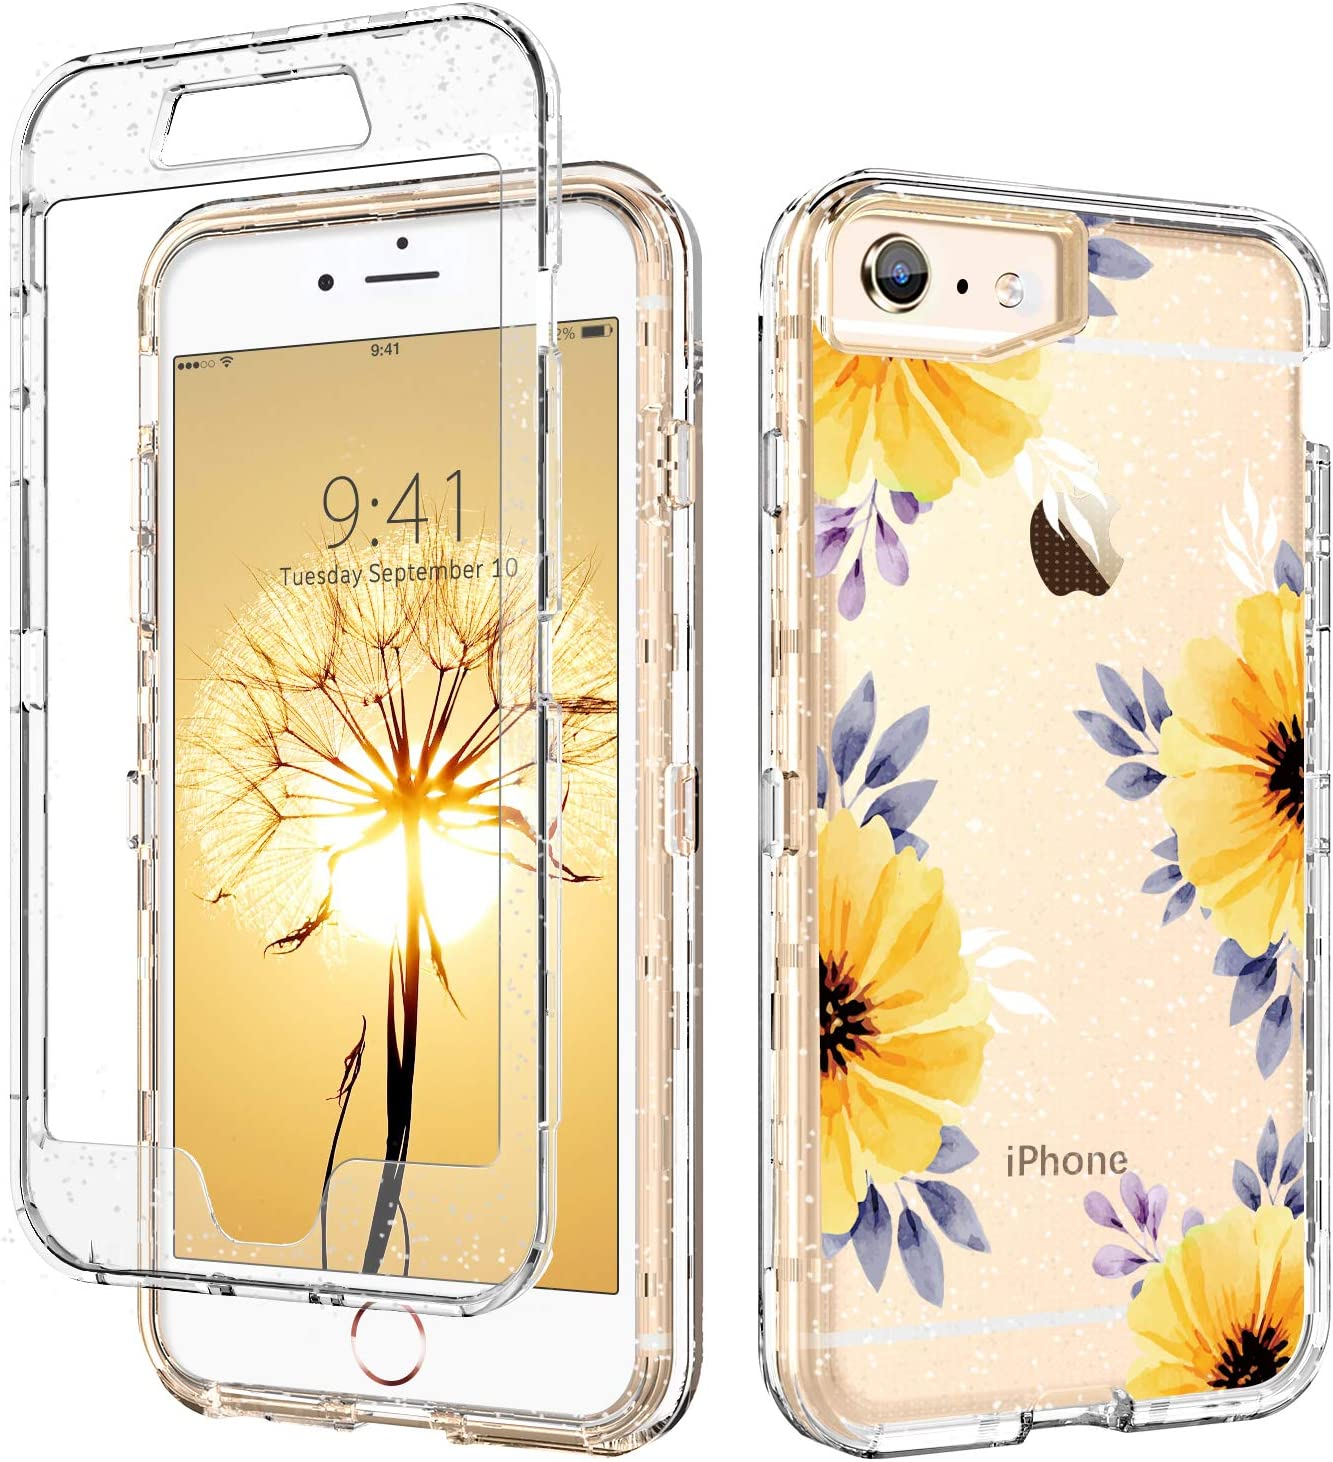 DUEDUE iPhone SE 2020 Case, iPhone 6/6S Case, 3 in 1 Glitter Shockproof Drop Protection Heavy Duty Hybrid Hard PC Transparent TPU Bumper Full Body Protective Case for iPhone 6/6S/SE 2,Flower